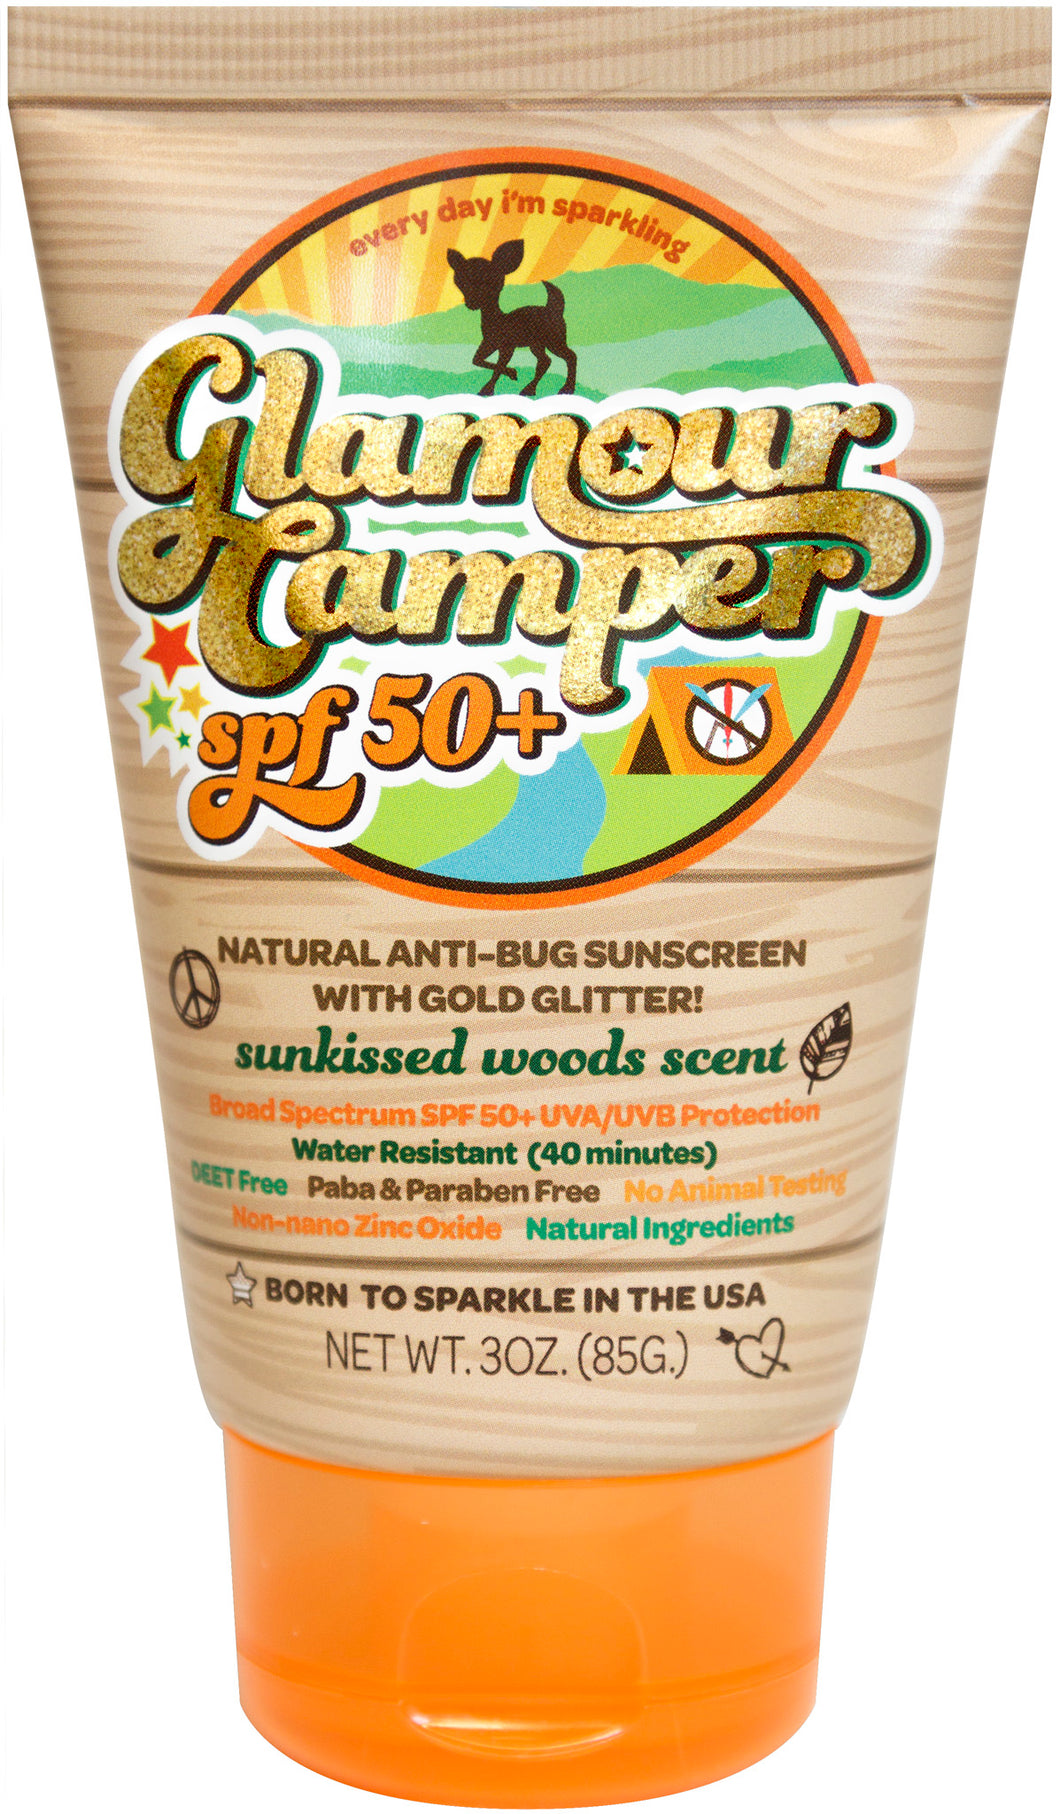 Glamour Camper SPF 50+ All Natural Sunscreen with All Natural Bug Deterrent & Glitter